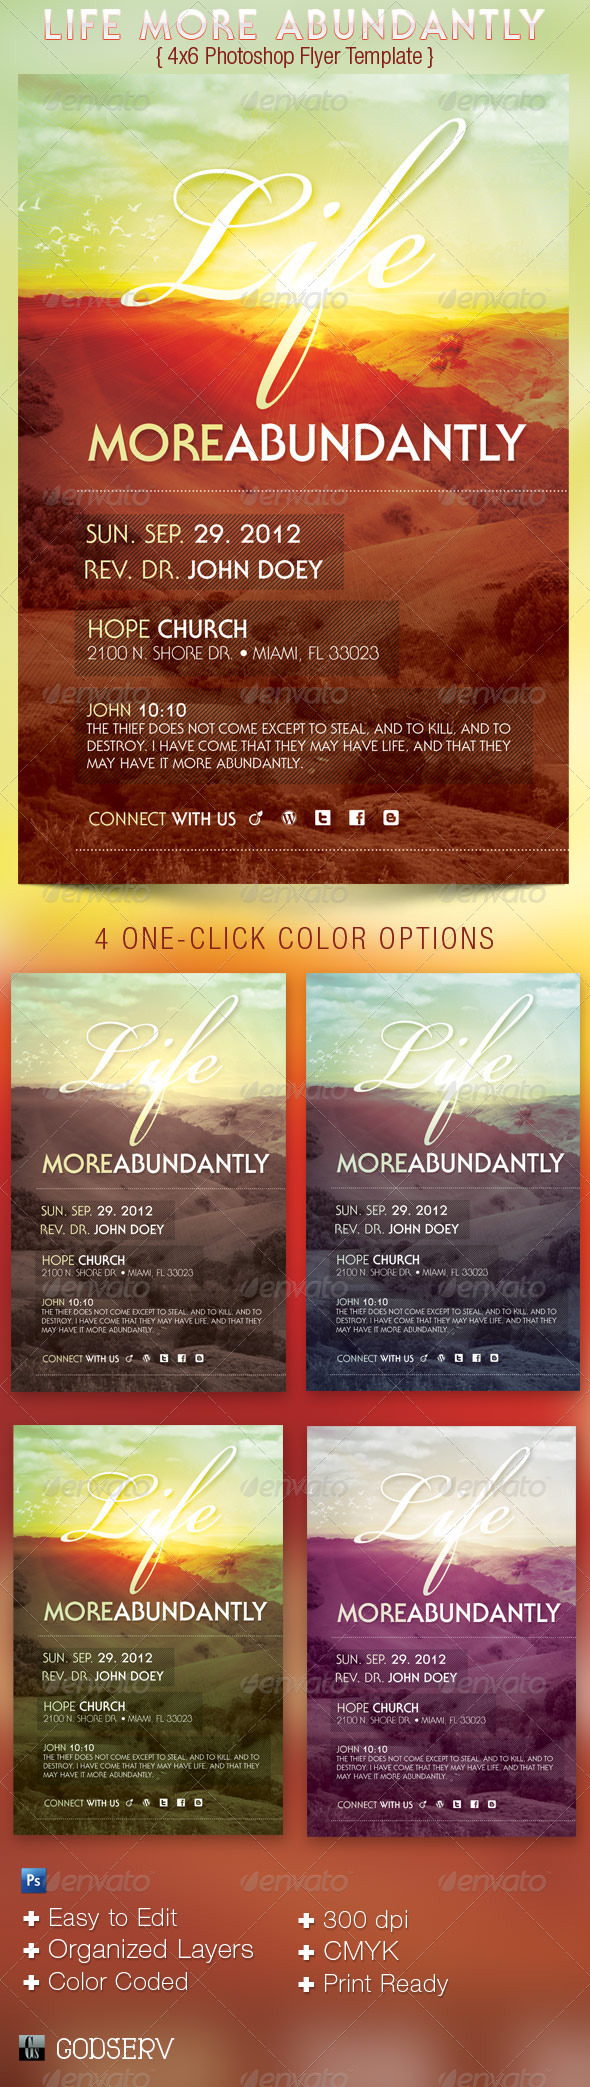 Life More Abundantly 4x6 Church Flyer - Church Flyers